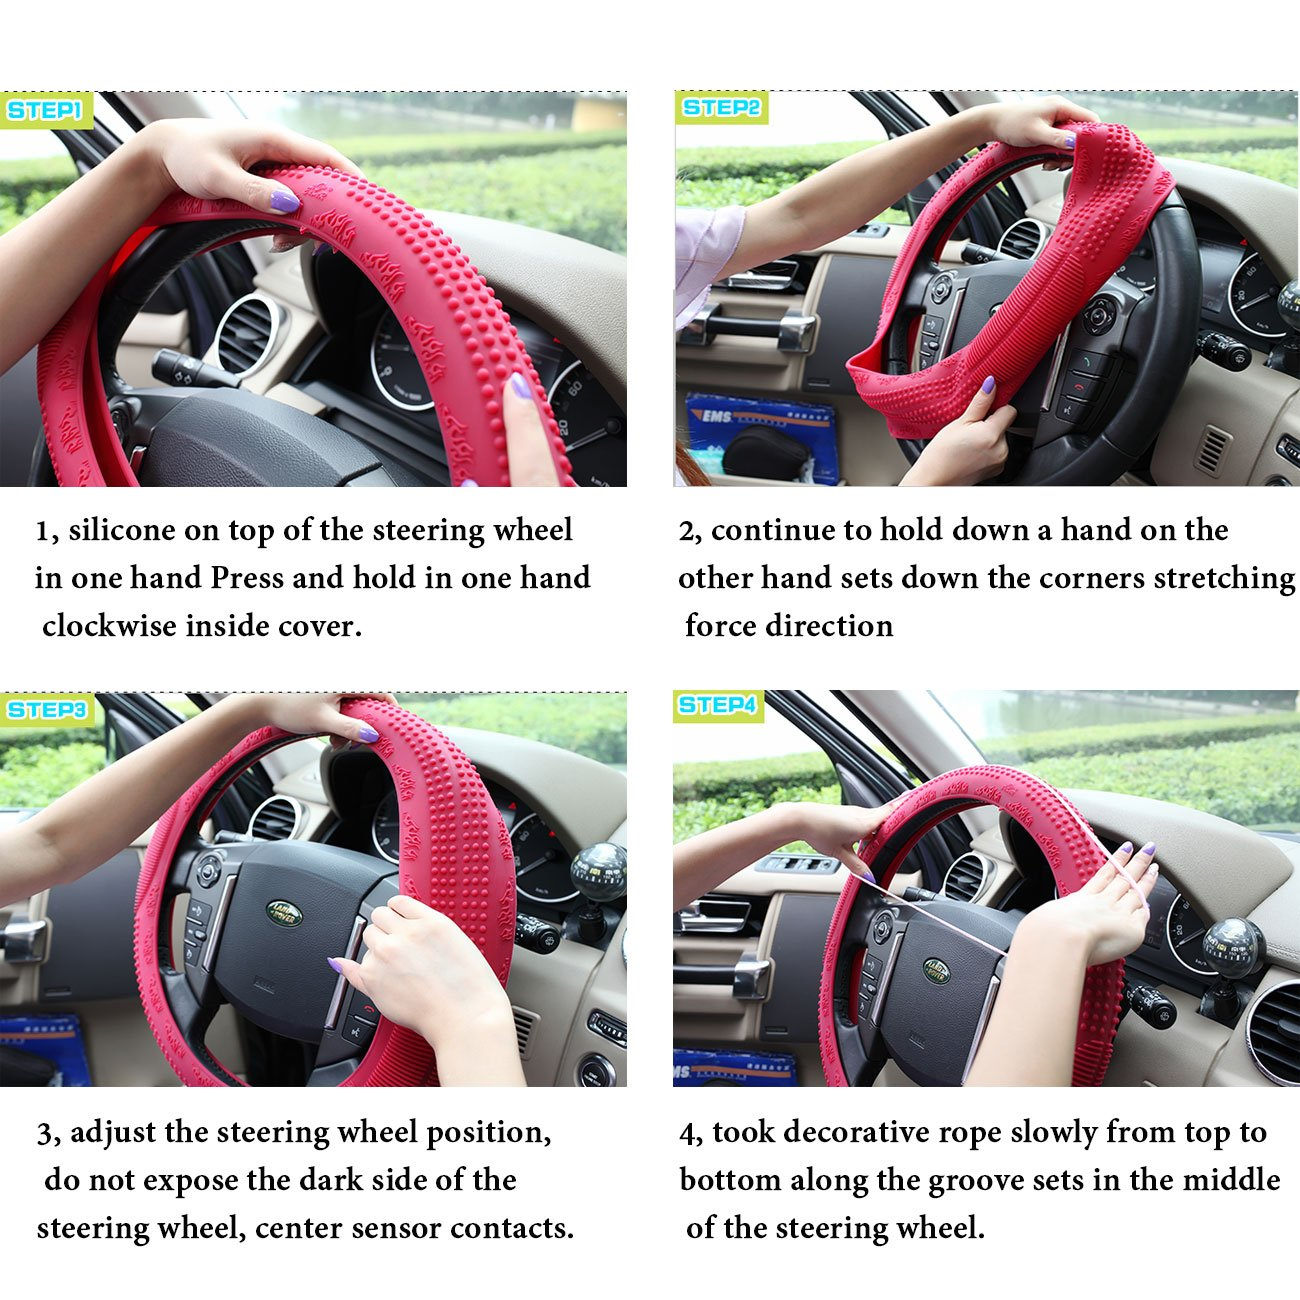 ASJ Natural Silicone Candy-colored Steering Wheel Cover Super Feel Skid Environmental Tasteless Silicone Universal Rose Red EULER